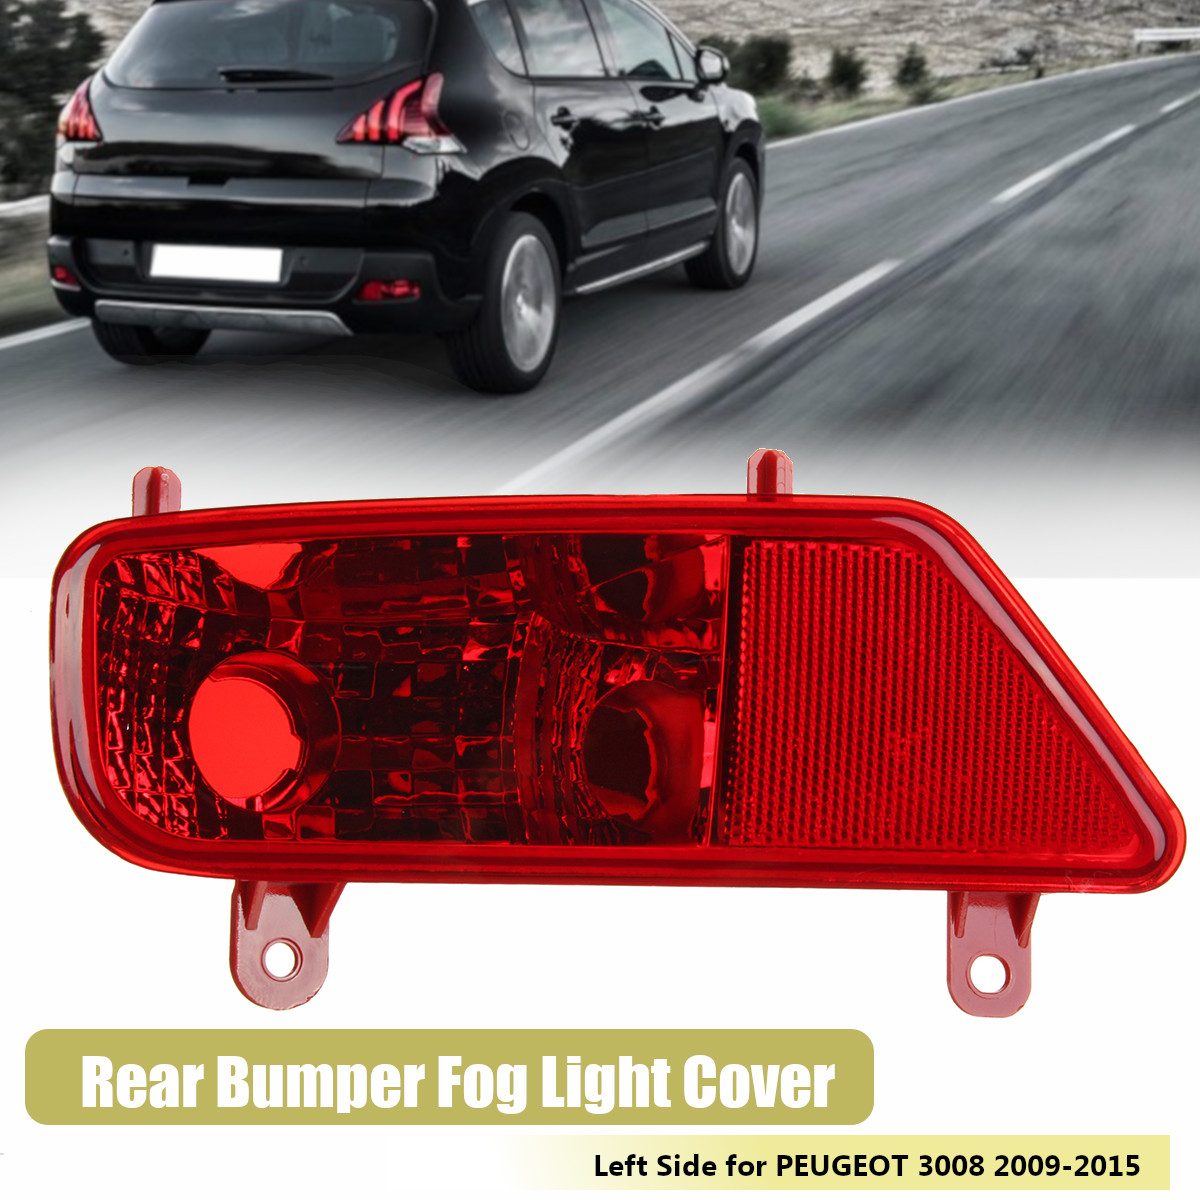 Left Rear Bumper Fog Light Lamp Cover Passenger Side for PEUGEOT 3008 2009-2015